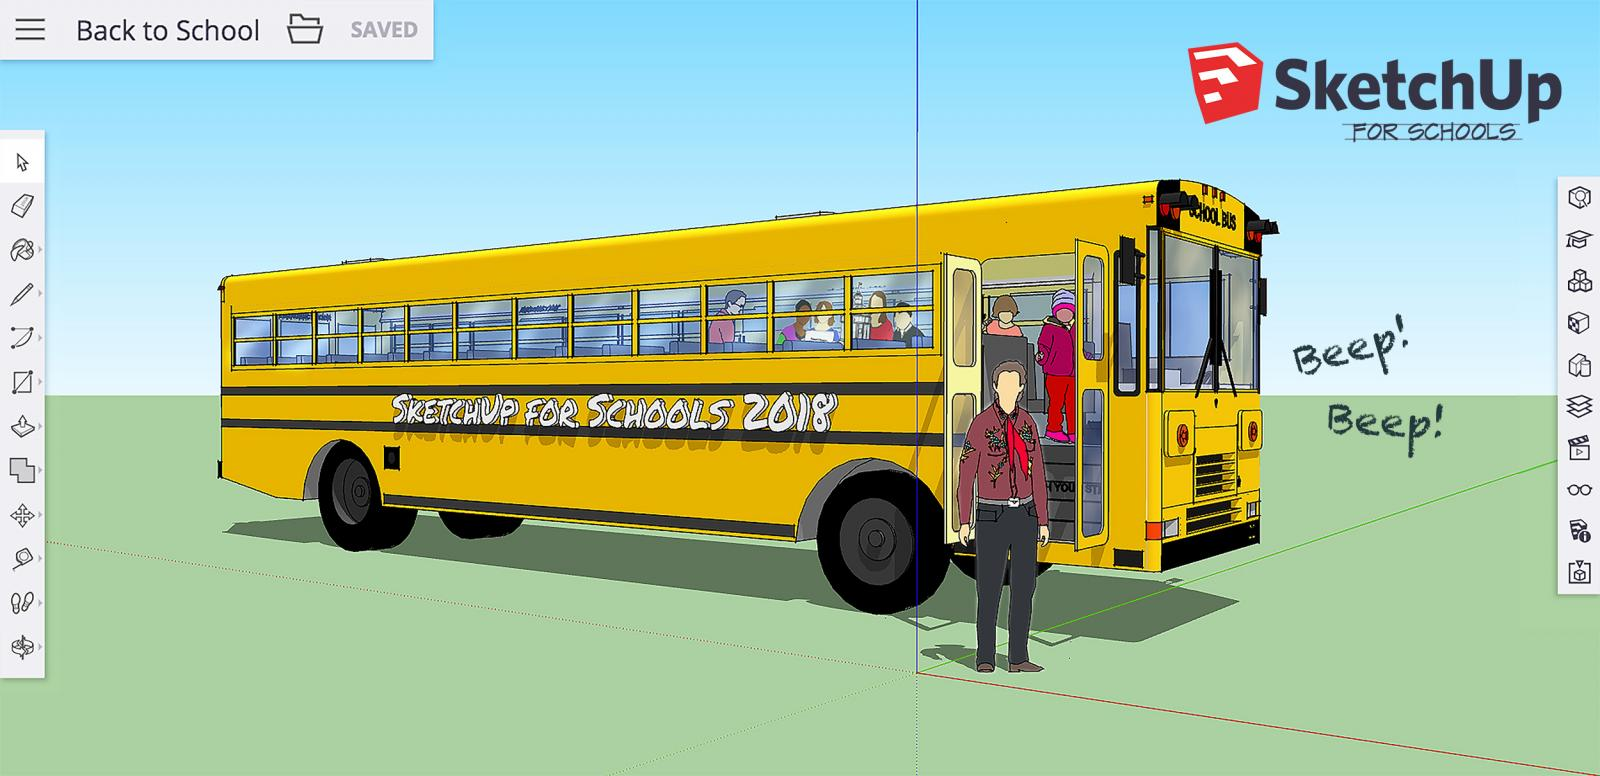 SketchUp for Schools back-to-school bus 2018